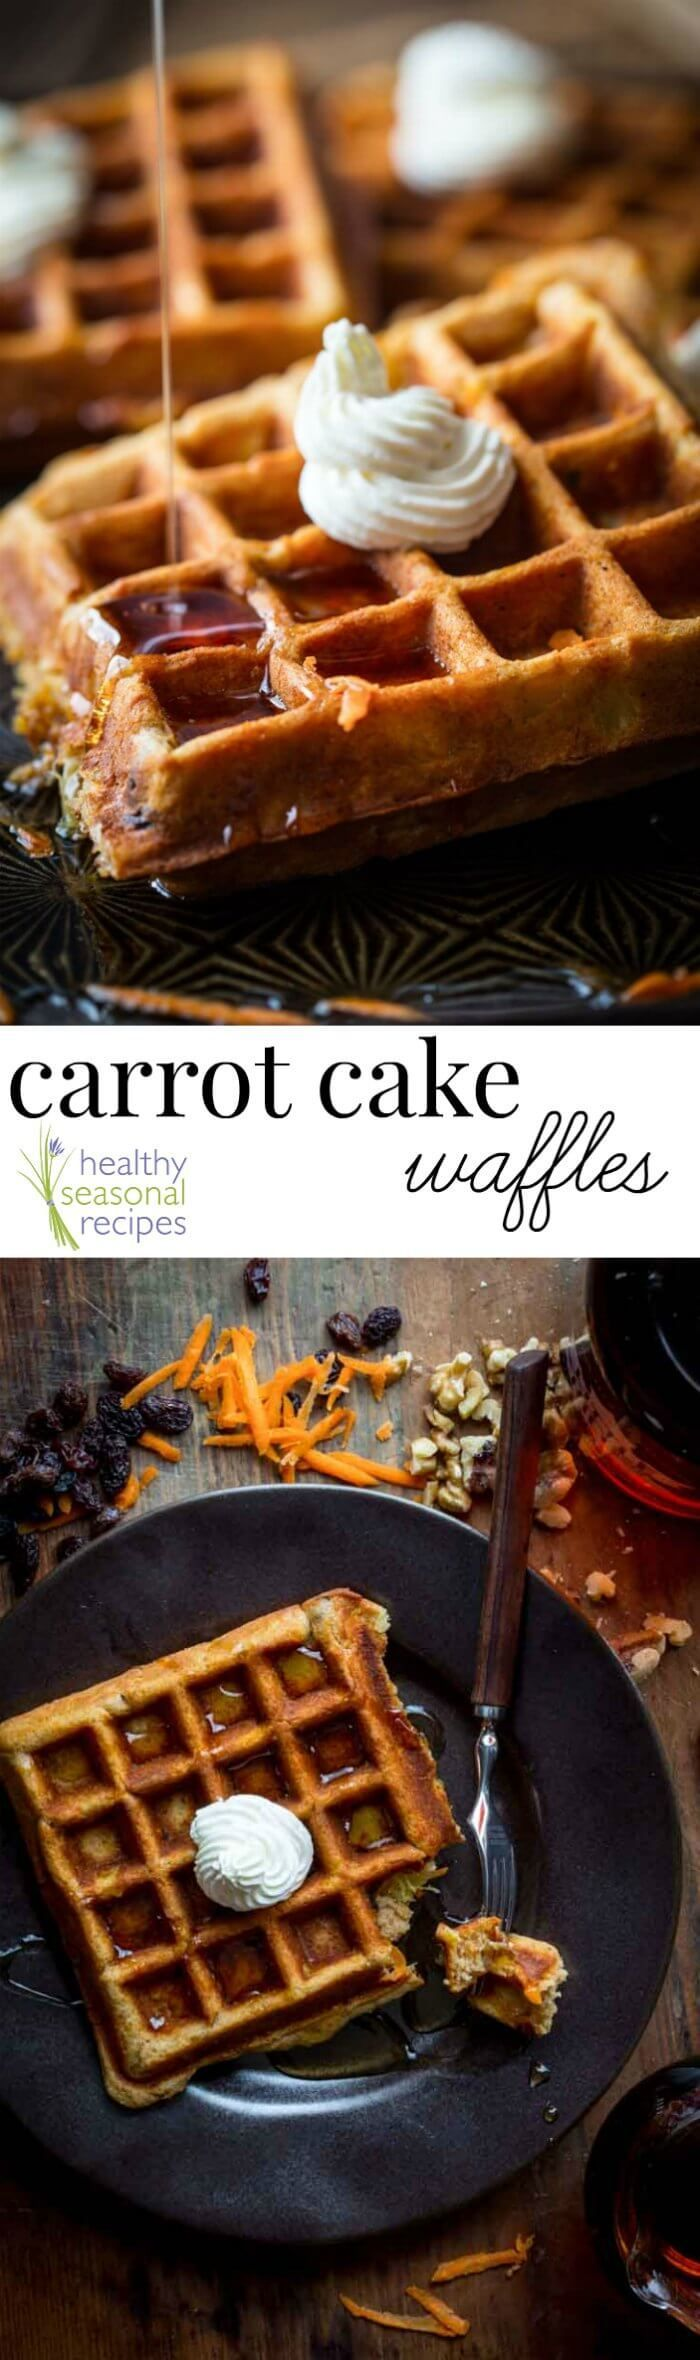 These Carrot Cake Waffles are a cross between a hearty, wholesome whole-wheat waffle and a slice of carrot cake. They have 9 grams of protein, 5 grams of fiber and nearly 25% of the RDA for Vitamin A and C. @healthyseasonal | Healthy Seasonal Recipes #carrotcake #breakfast #easter